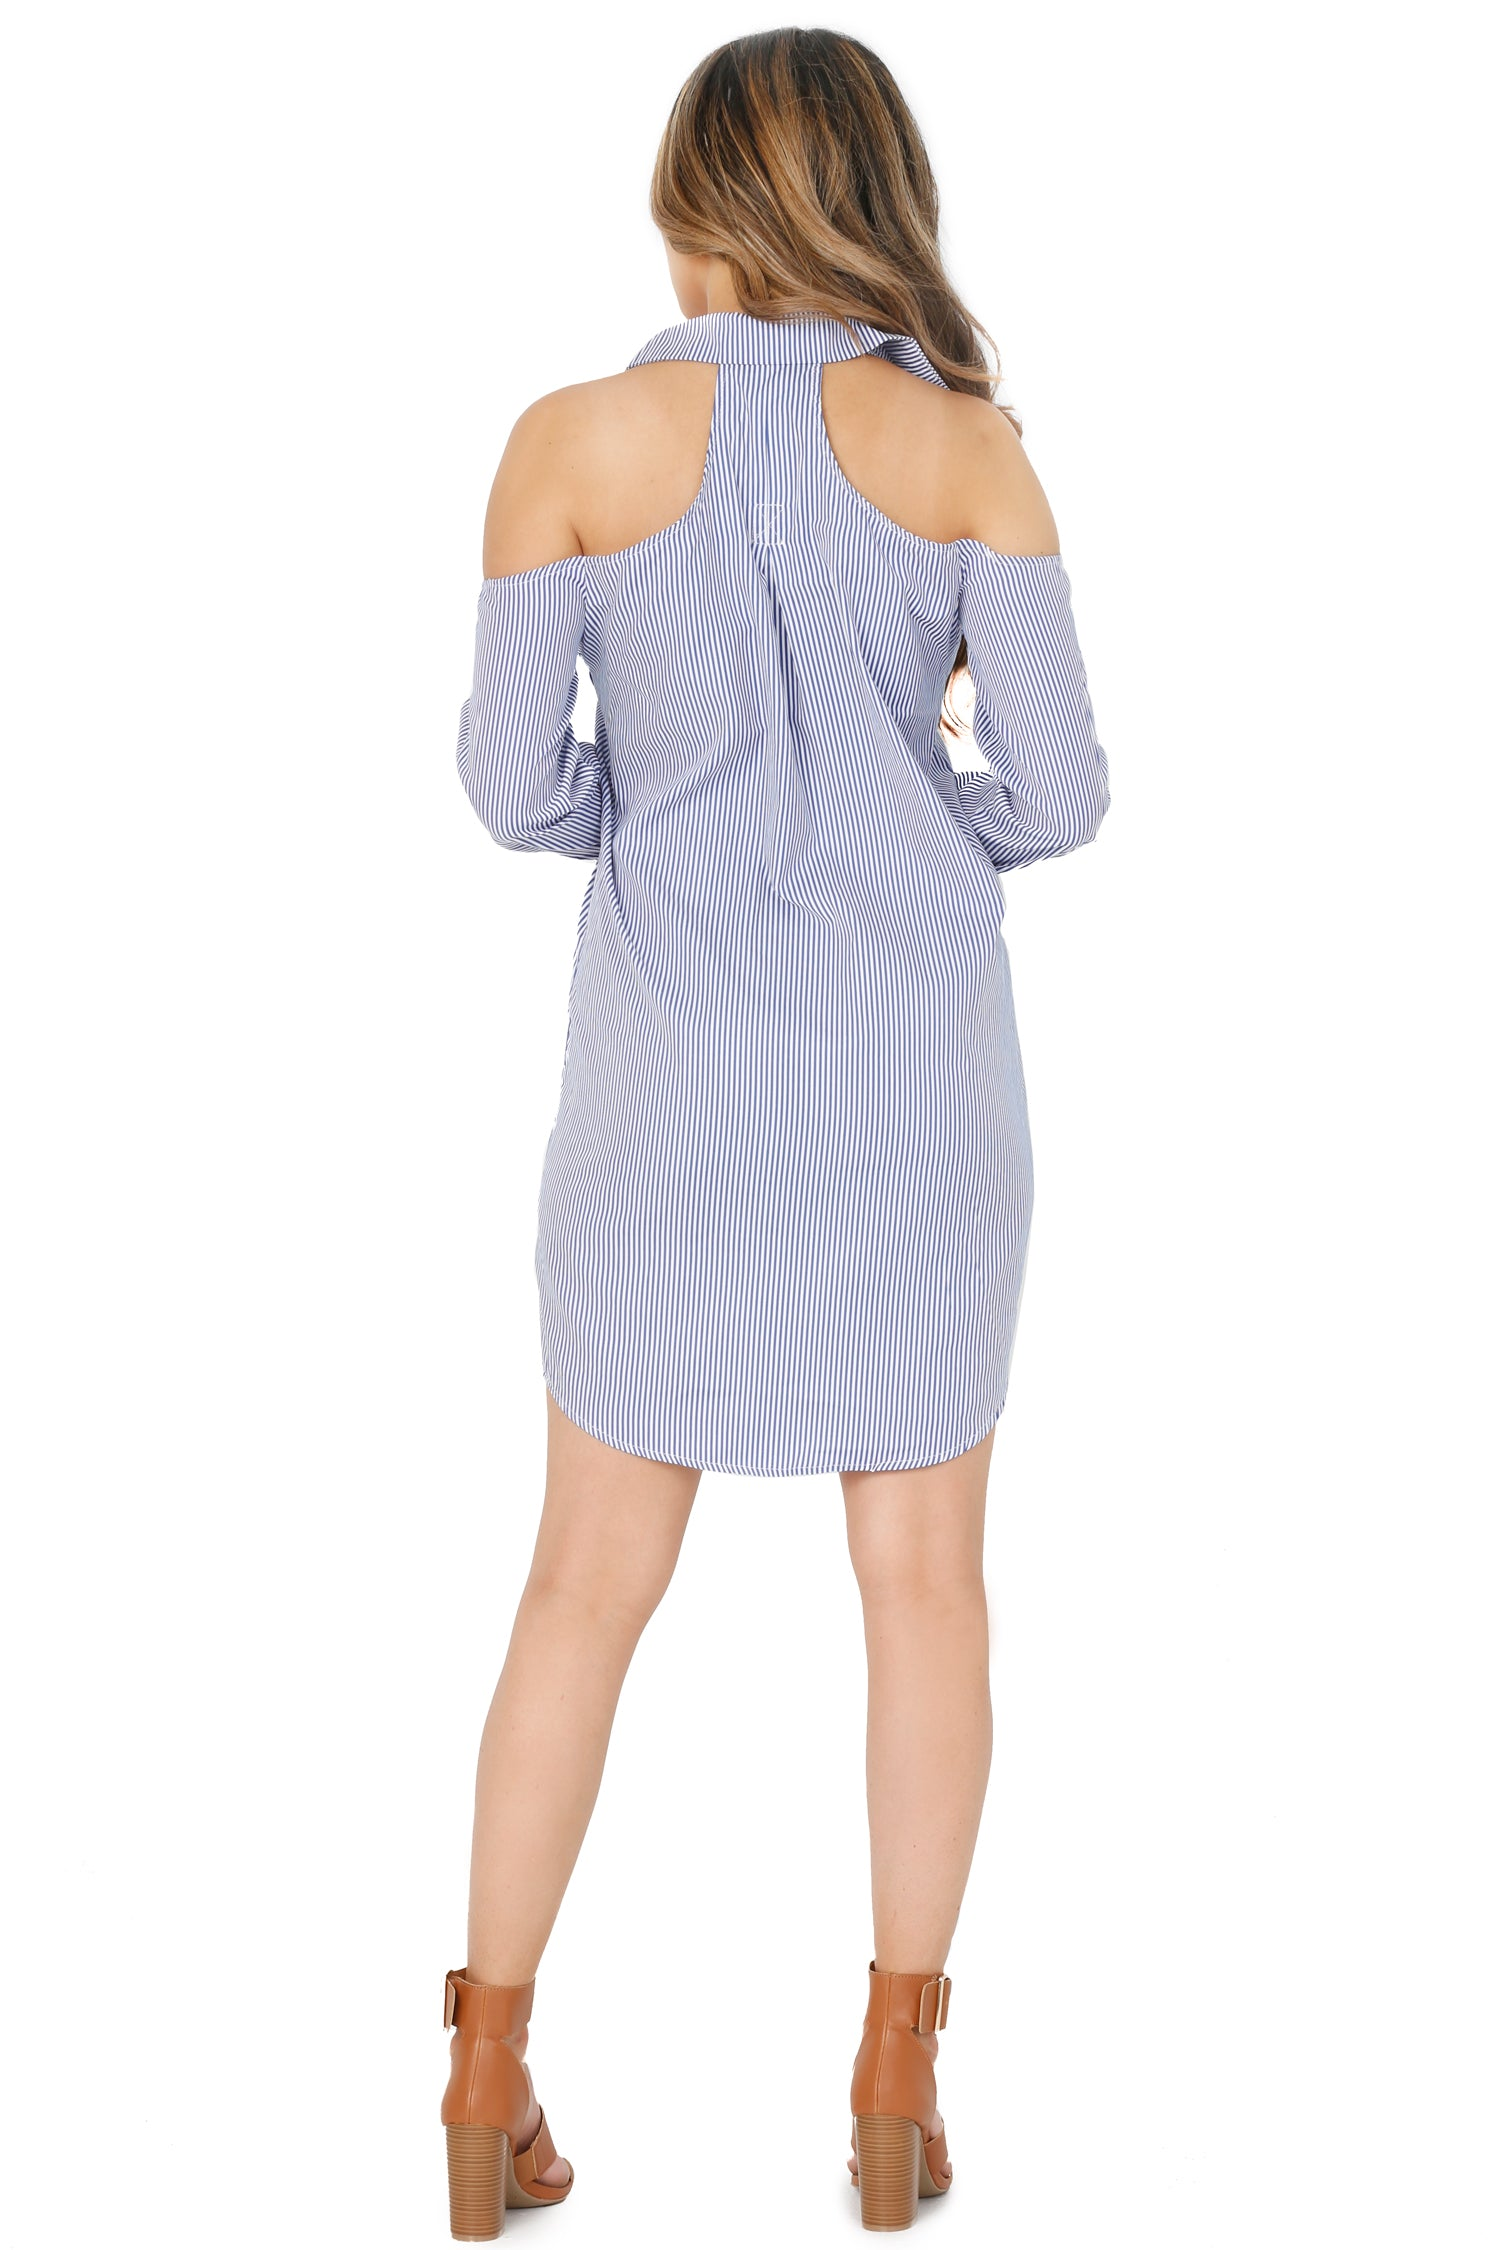 BLAKE SHIRTDRESS